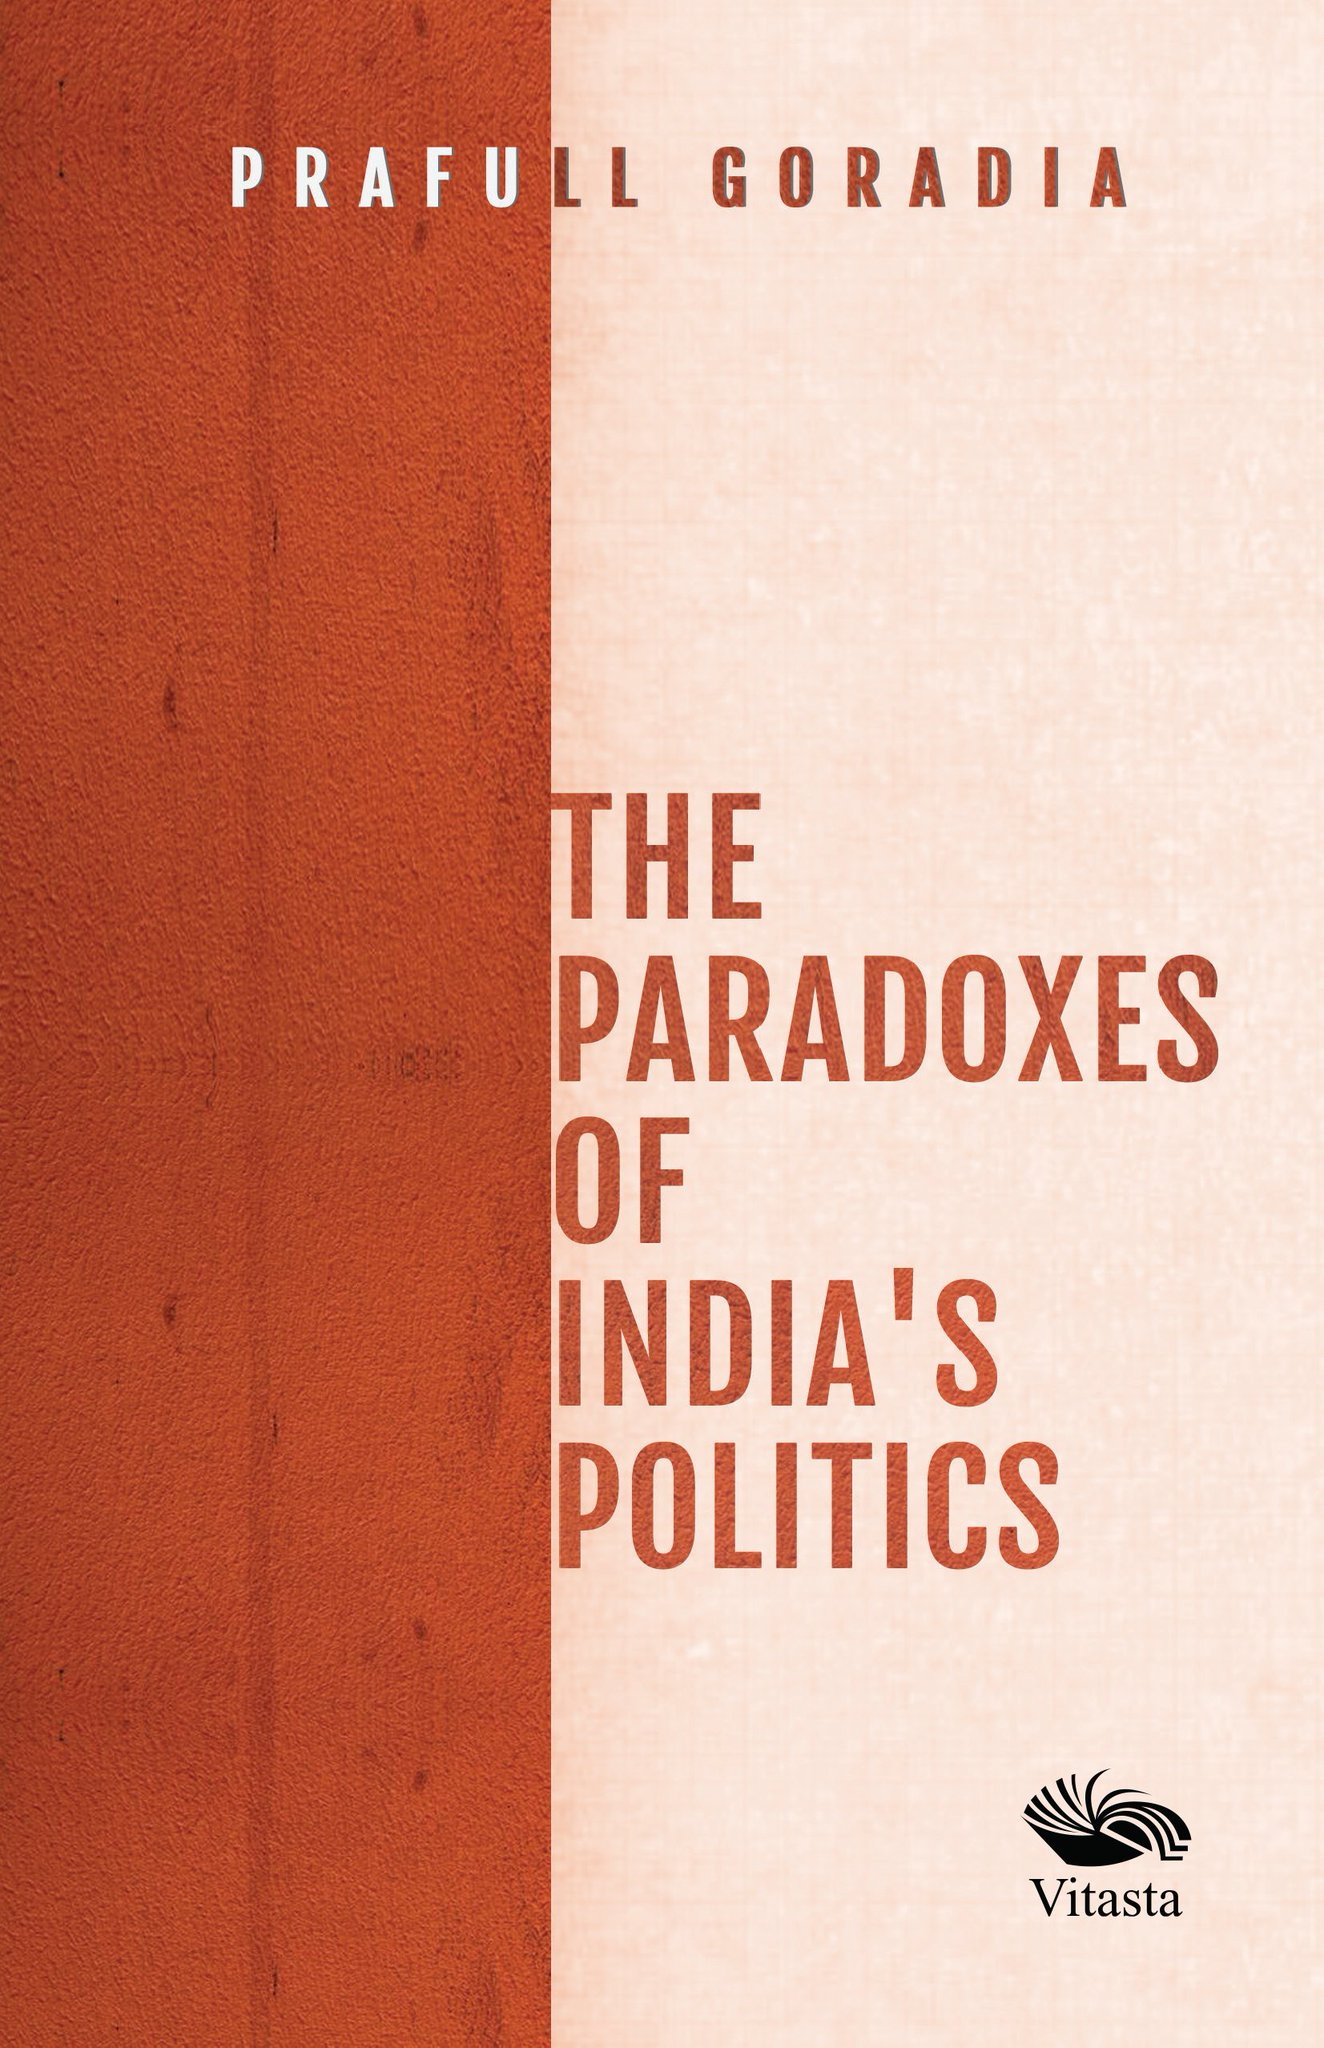 The Paradoxes of India's Politics